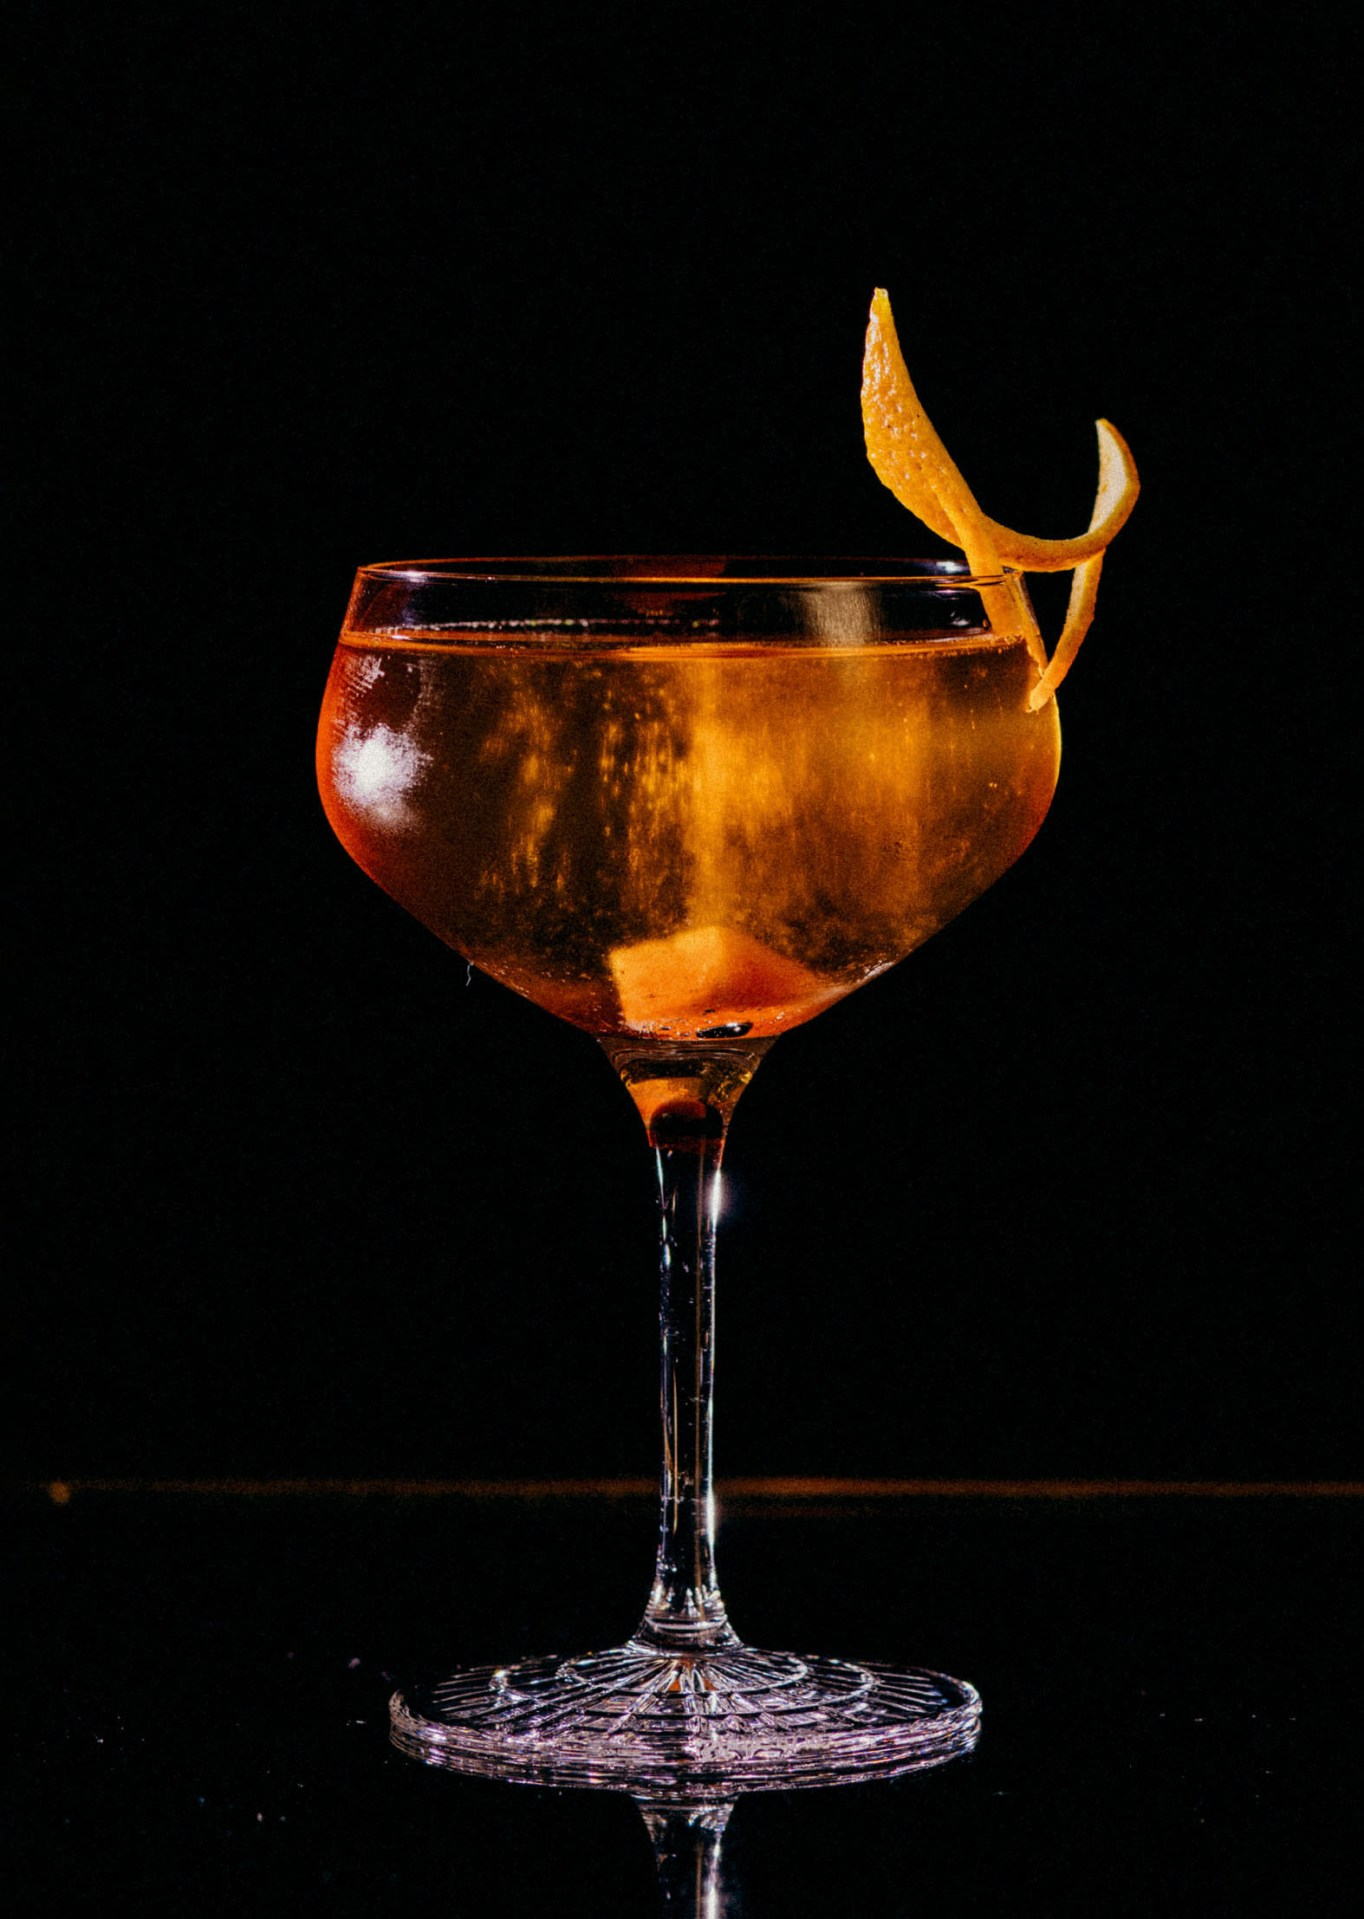 Recipe: 10cl Perrier-Jouët Brut 3cl Martell V.S.O.P Cognac 2cl Grand Marnier Cube of Sugar soaked with Angostura Bitters